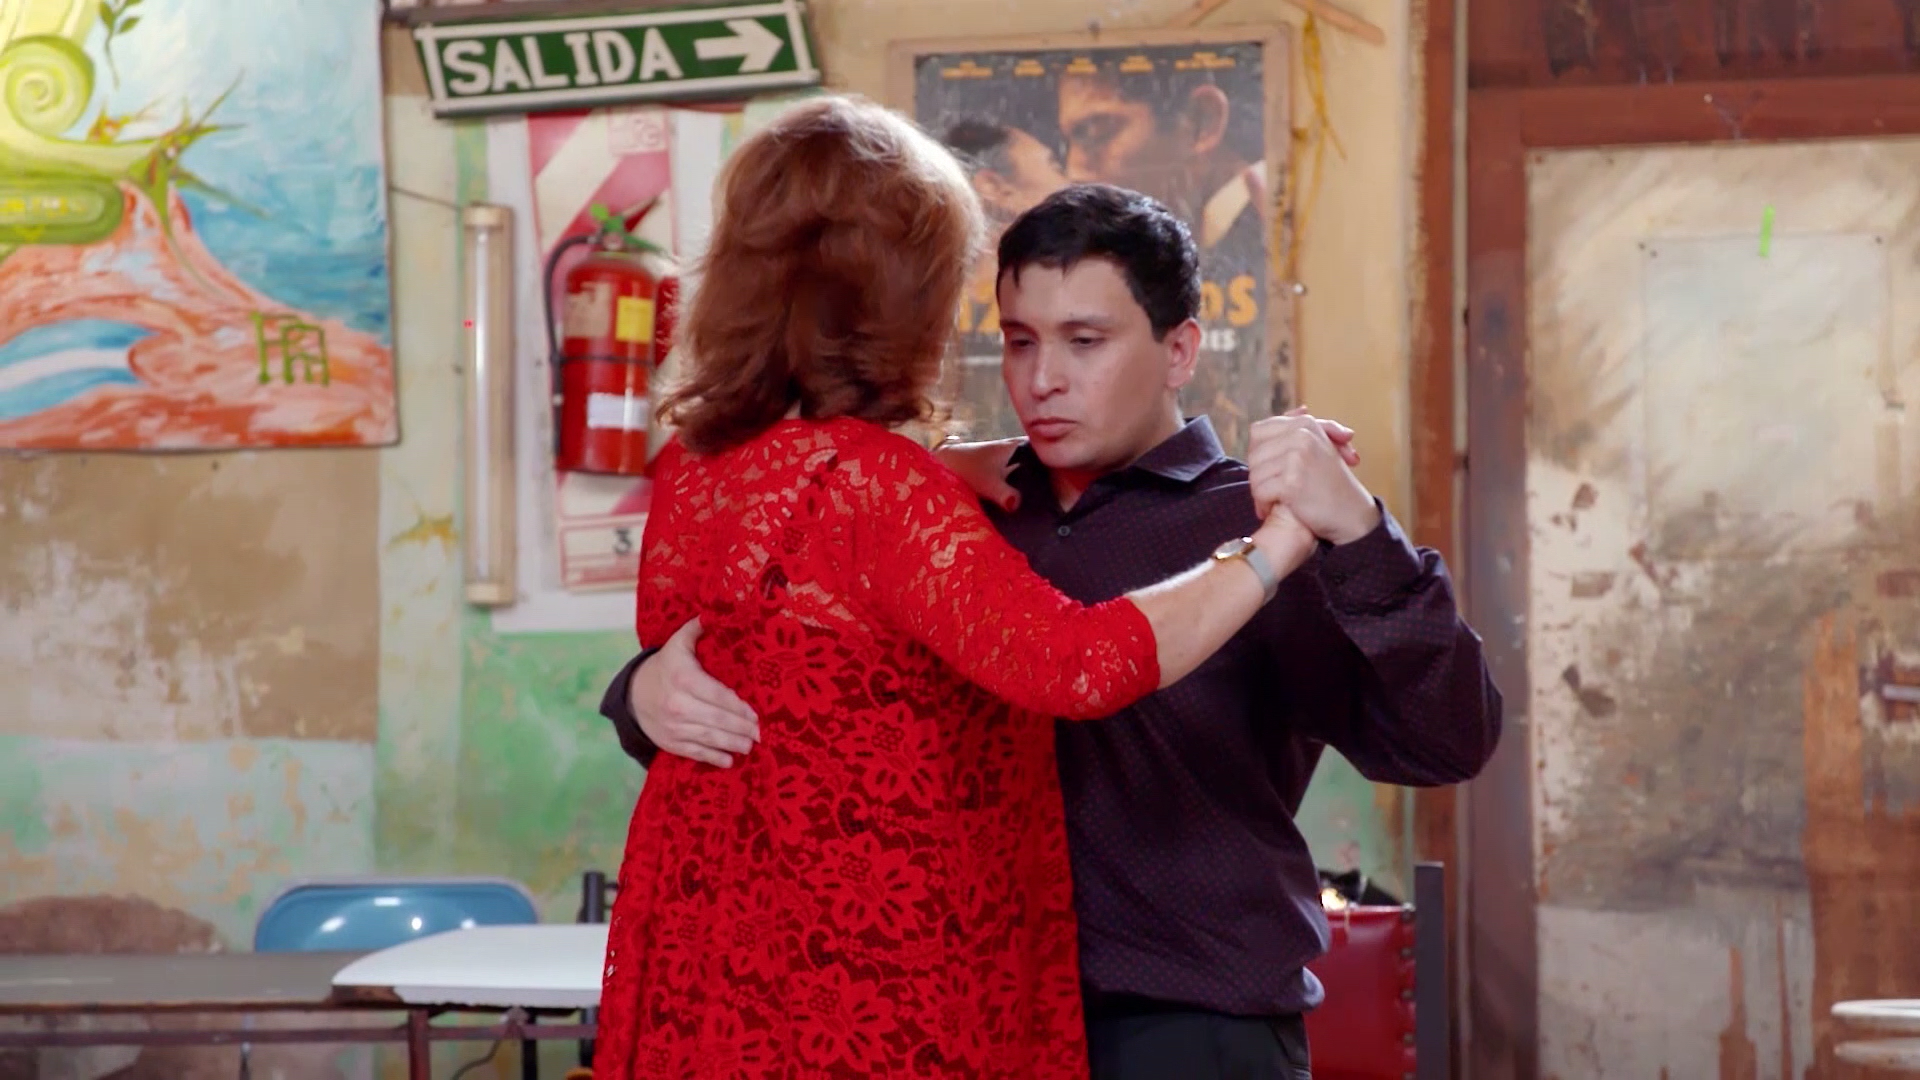 The Guides 'sensual' take on the Argentine Tango